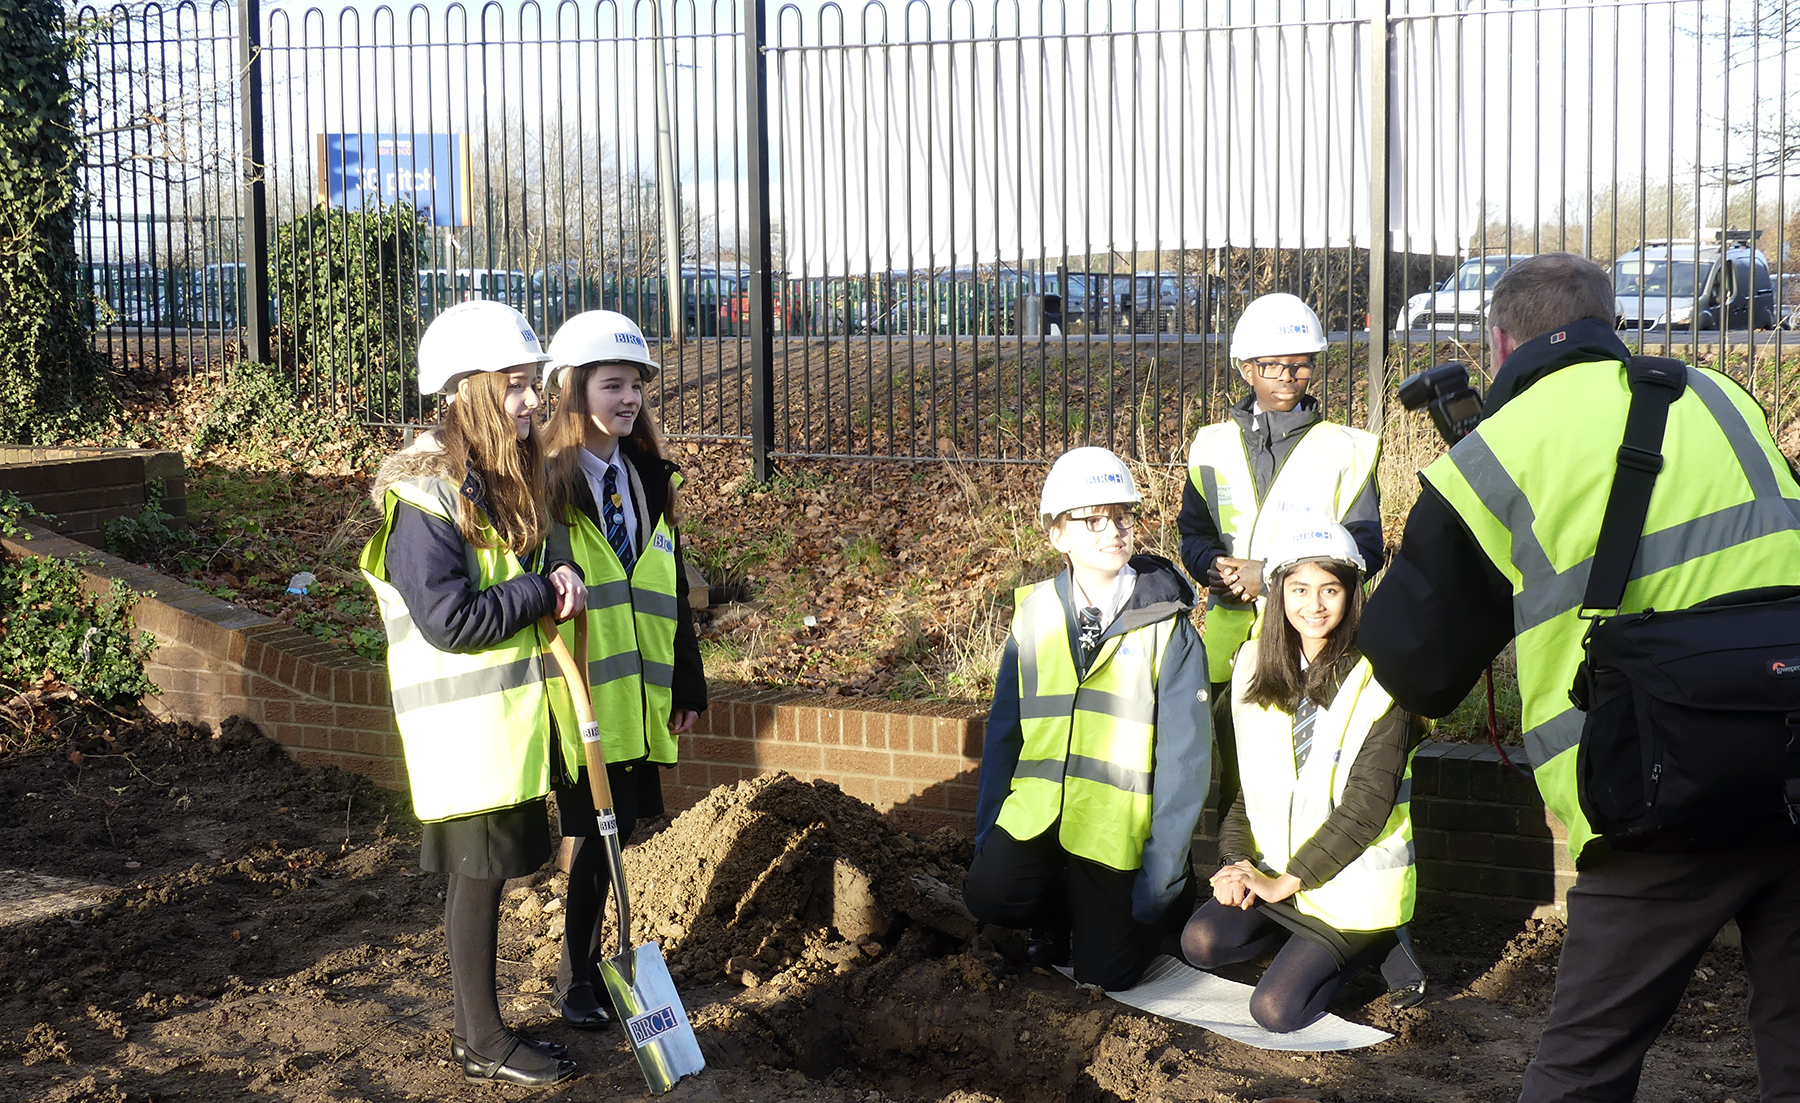 Time Capsule being placed at Kettlethorpe new school building December 2020